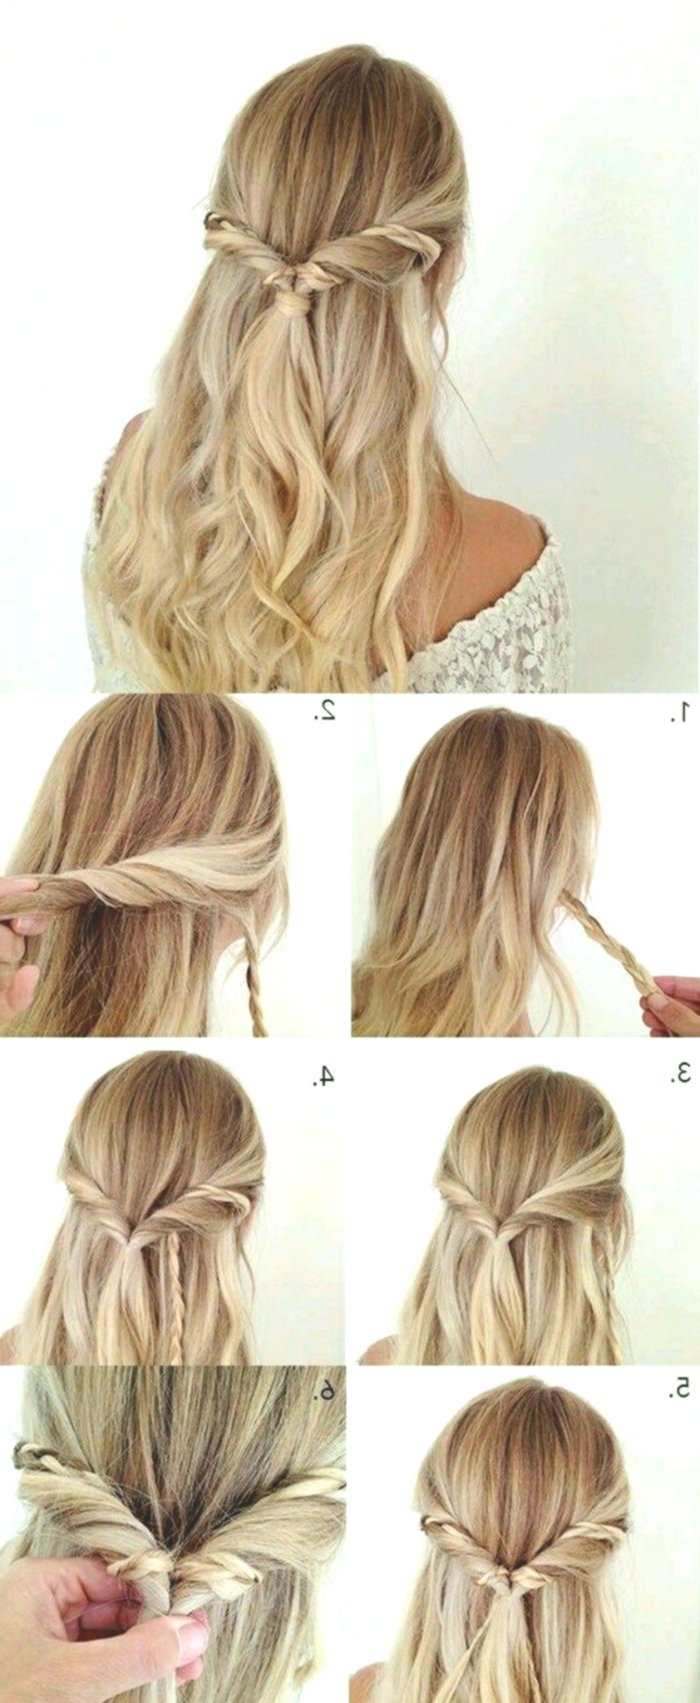 lovely beautiful hairstyles ideas - fresh Beautiful Hairstyles Photography